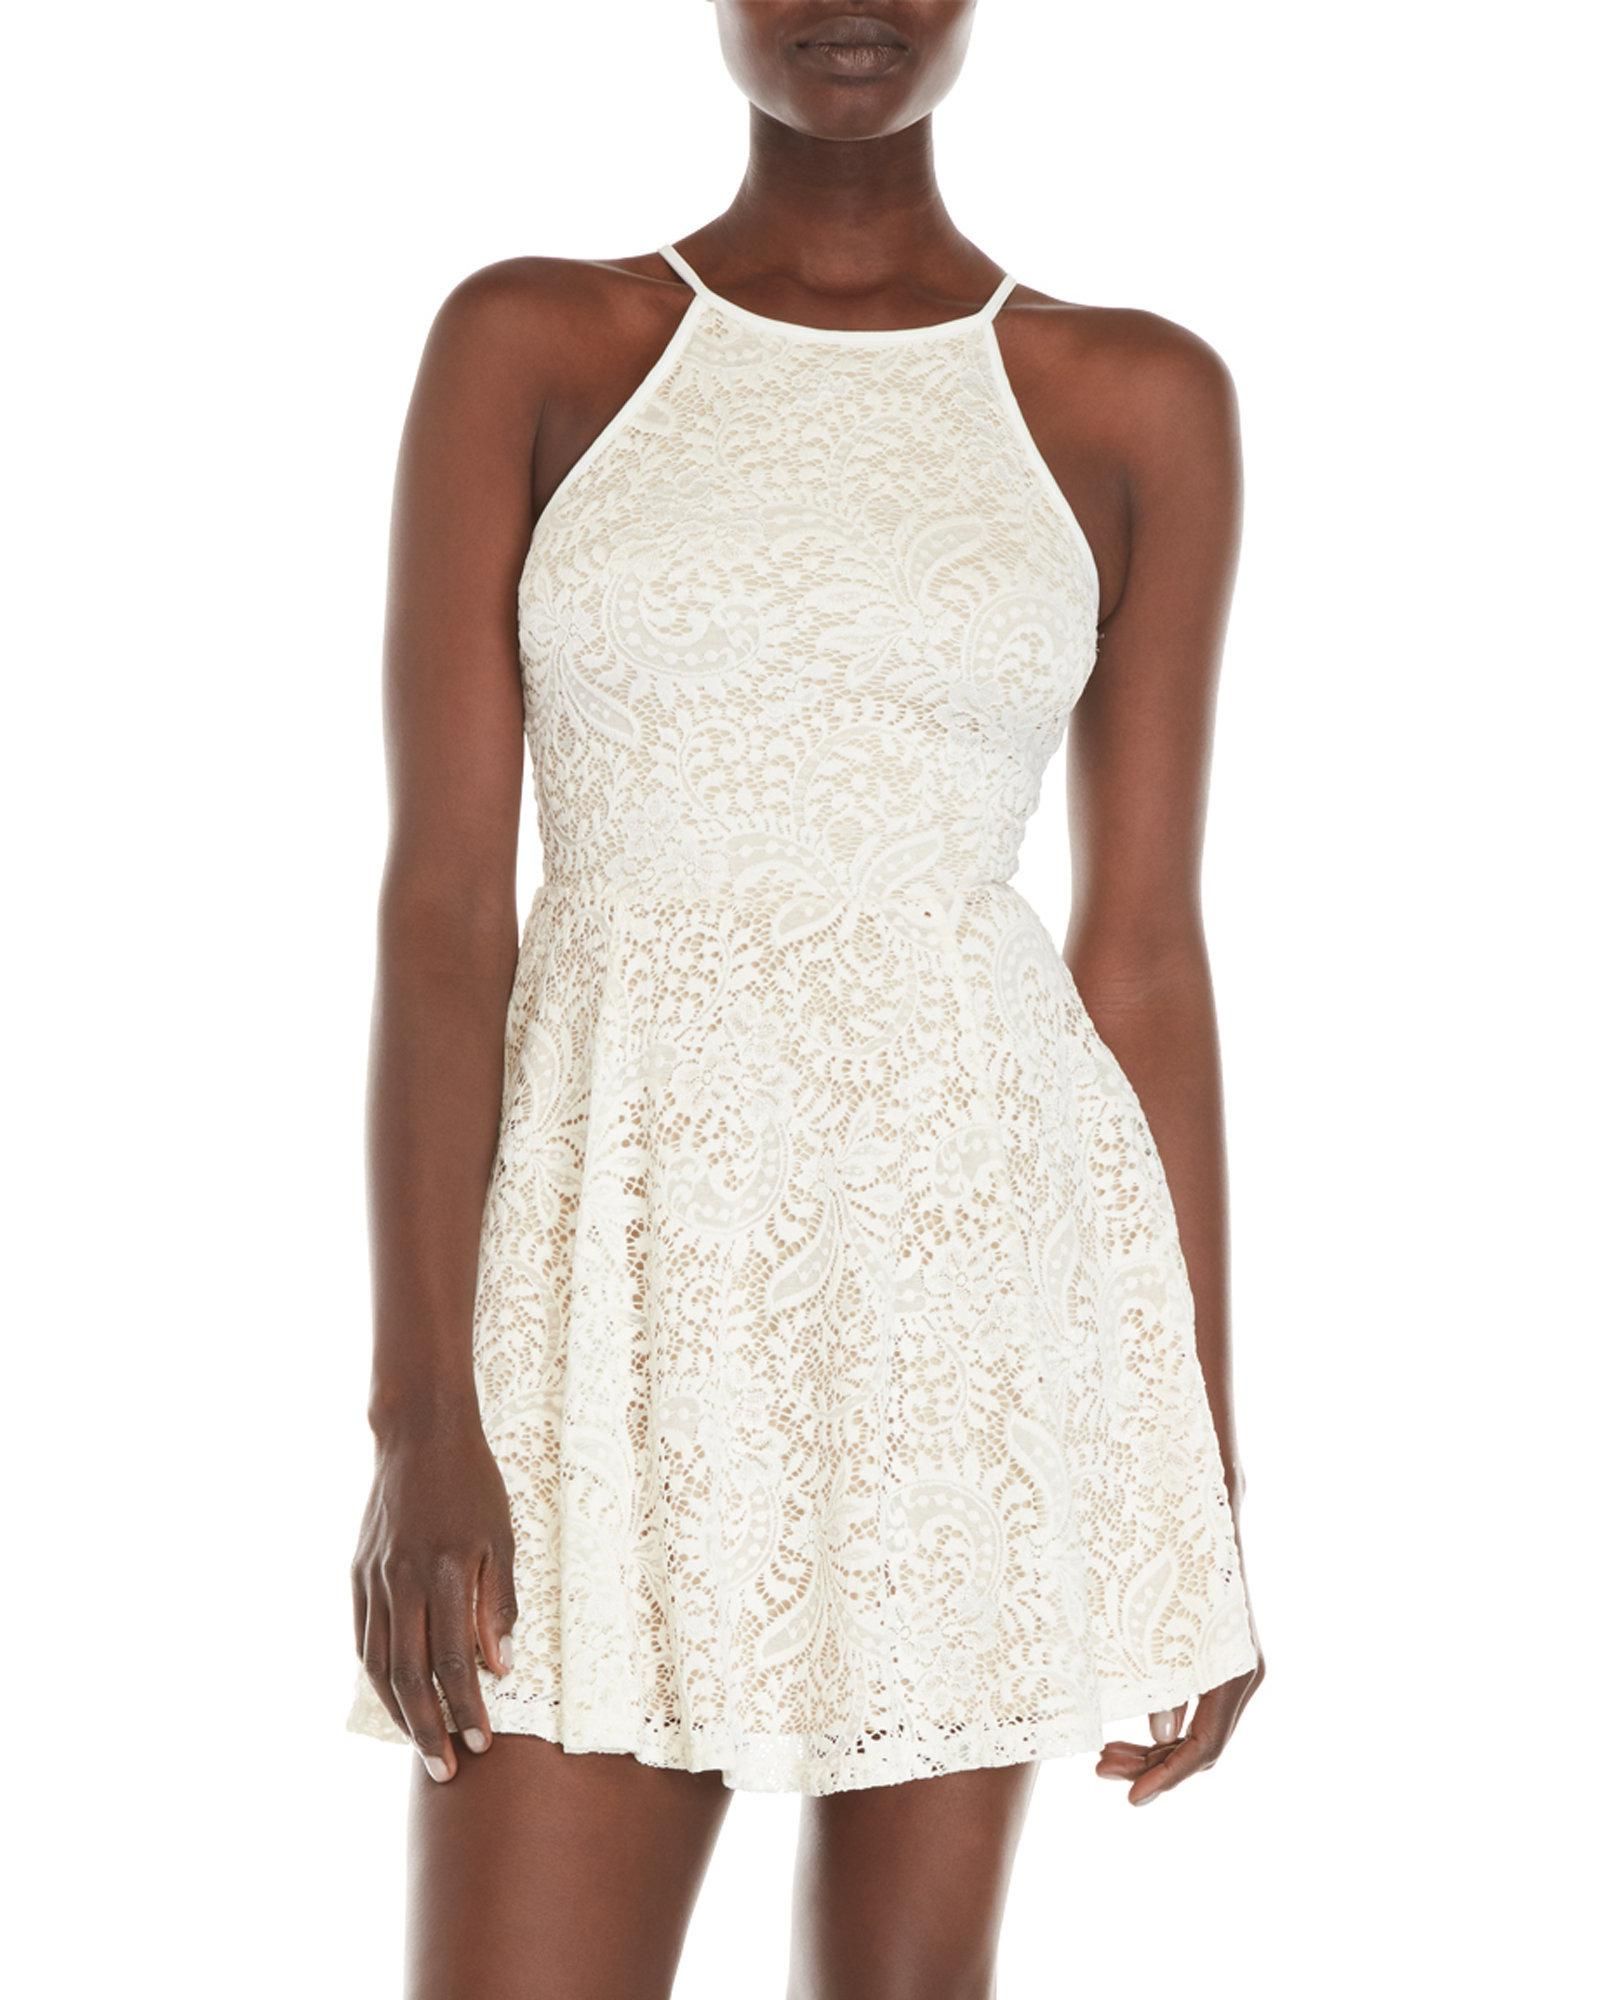 88ff9eb13 Lyst - Emerald Sundae Sleeveless Lace Fit & Flare Dress in White